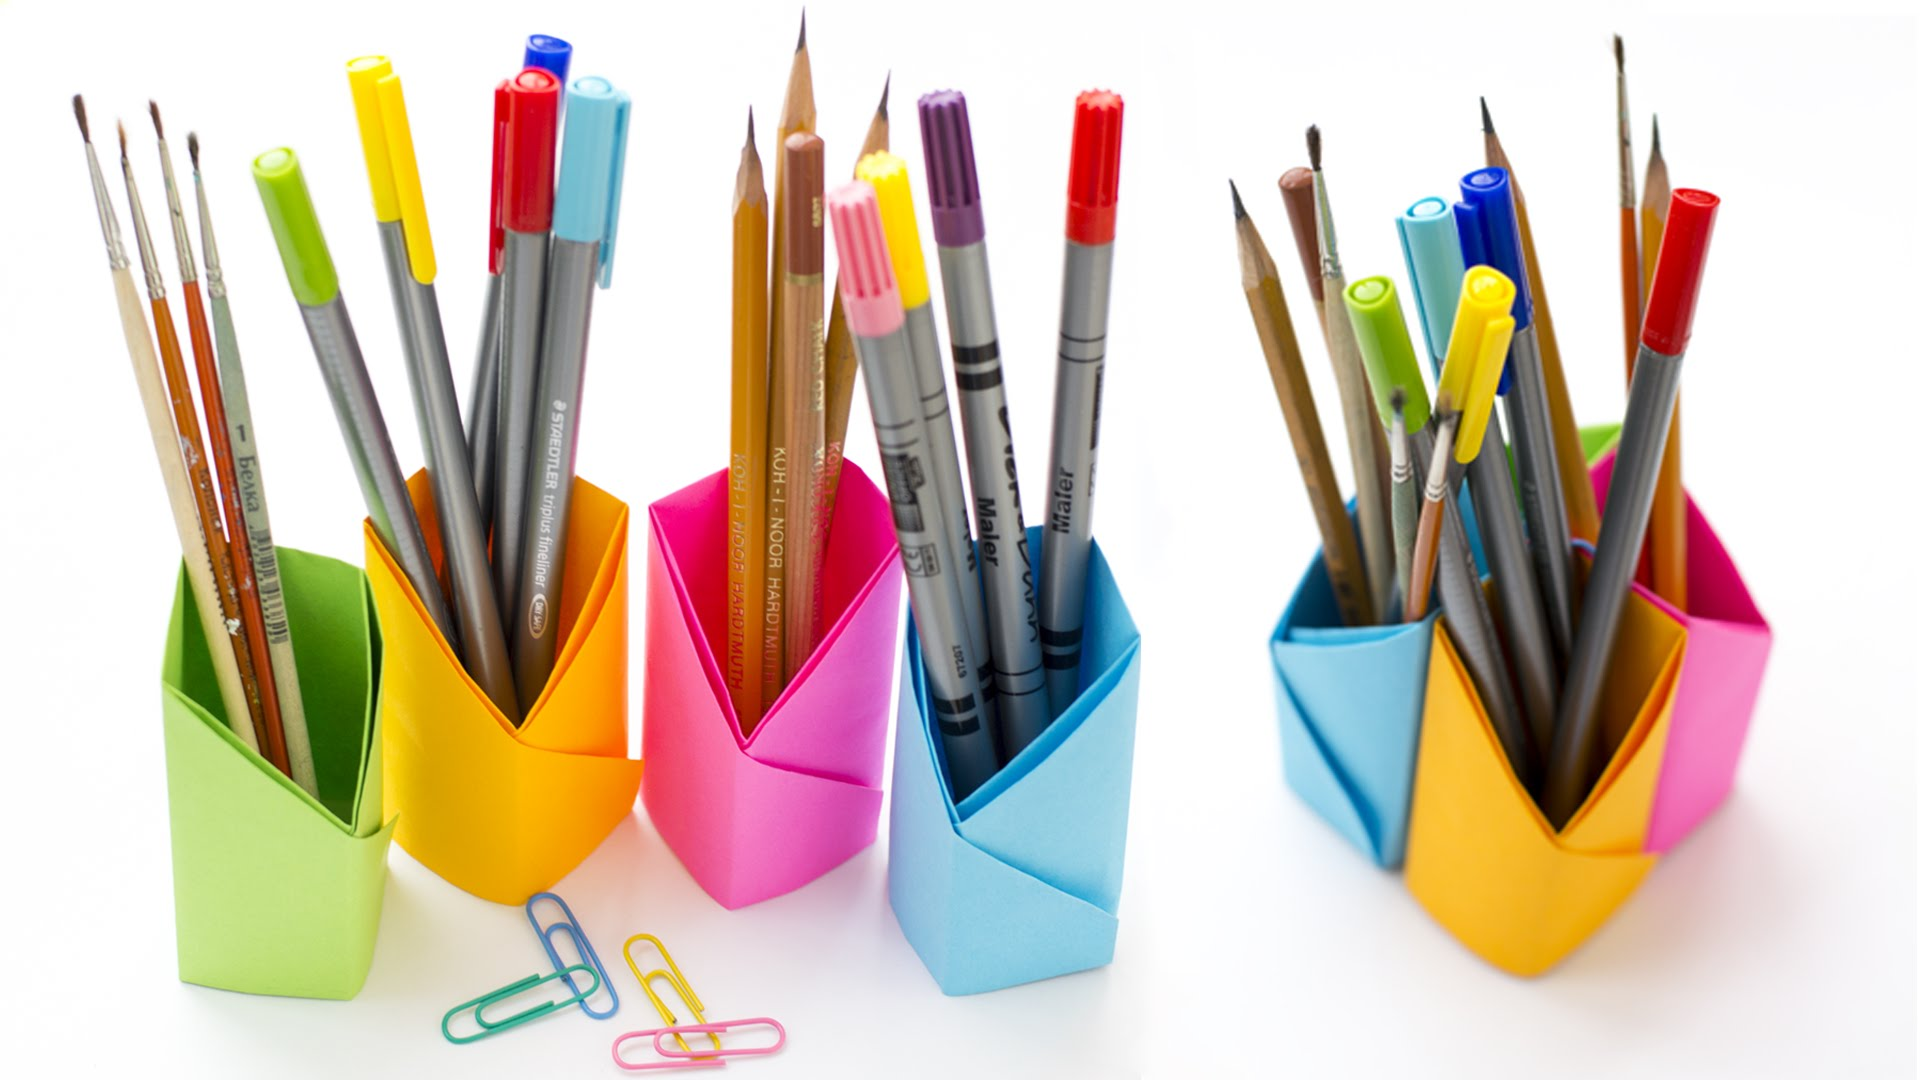 How to Make Pen Stand Easy [Paper Pen Holder] - DIY Paper Pencil ... | 1080x1920